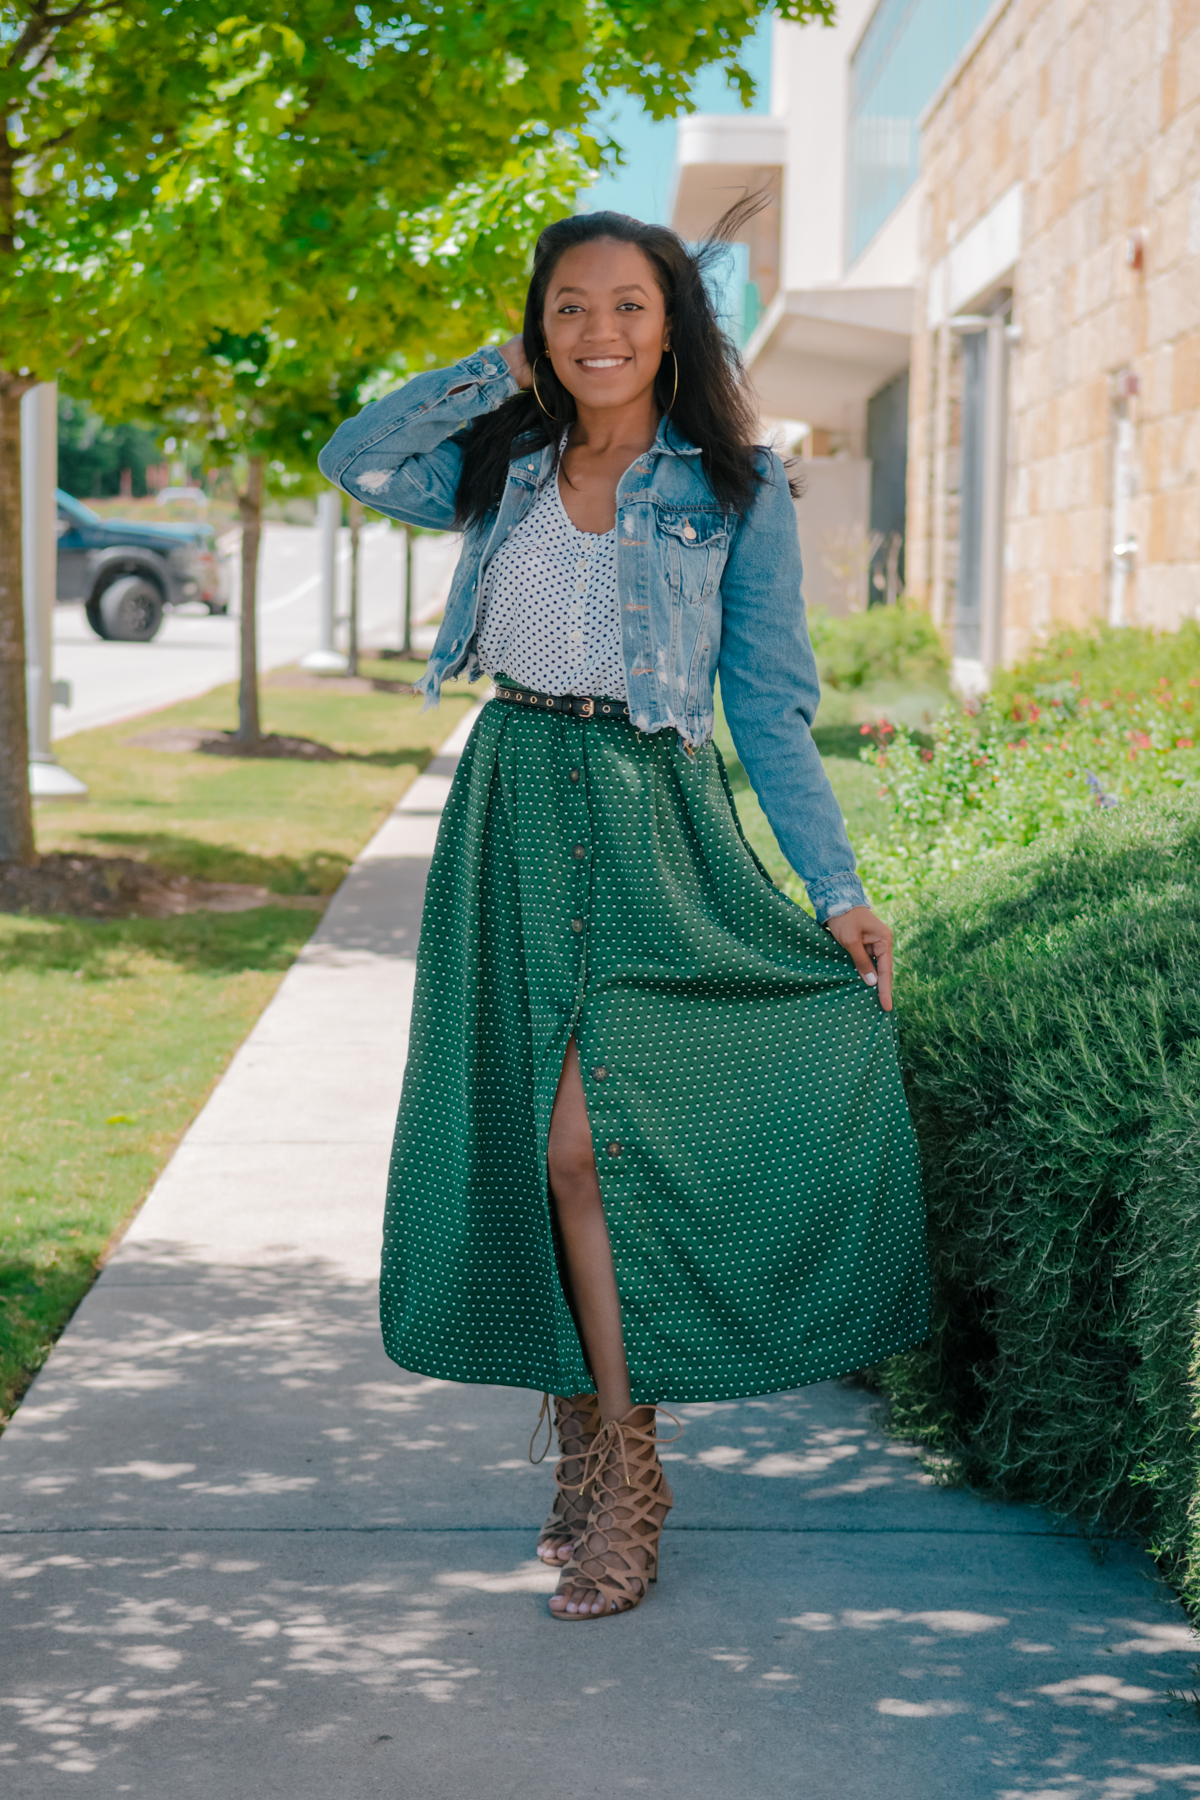 How to Wear Long Skirts if You're Short   Venti Fashion